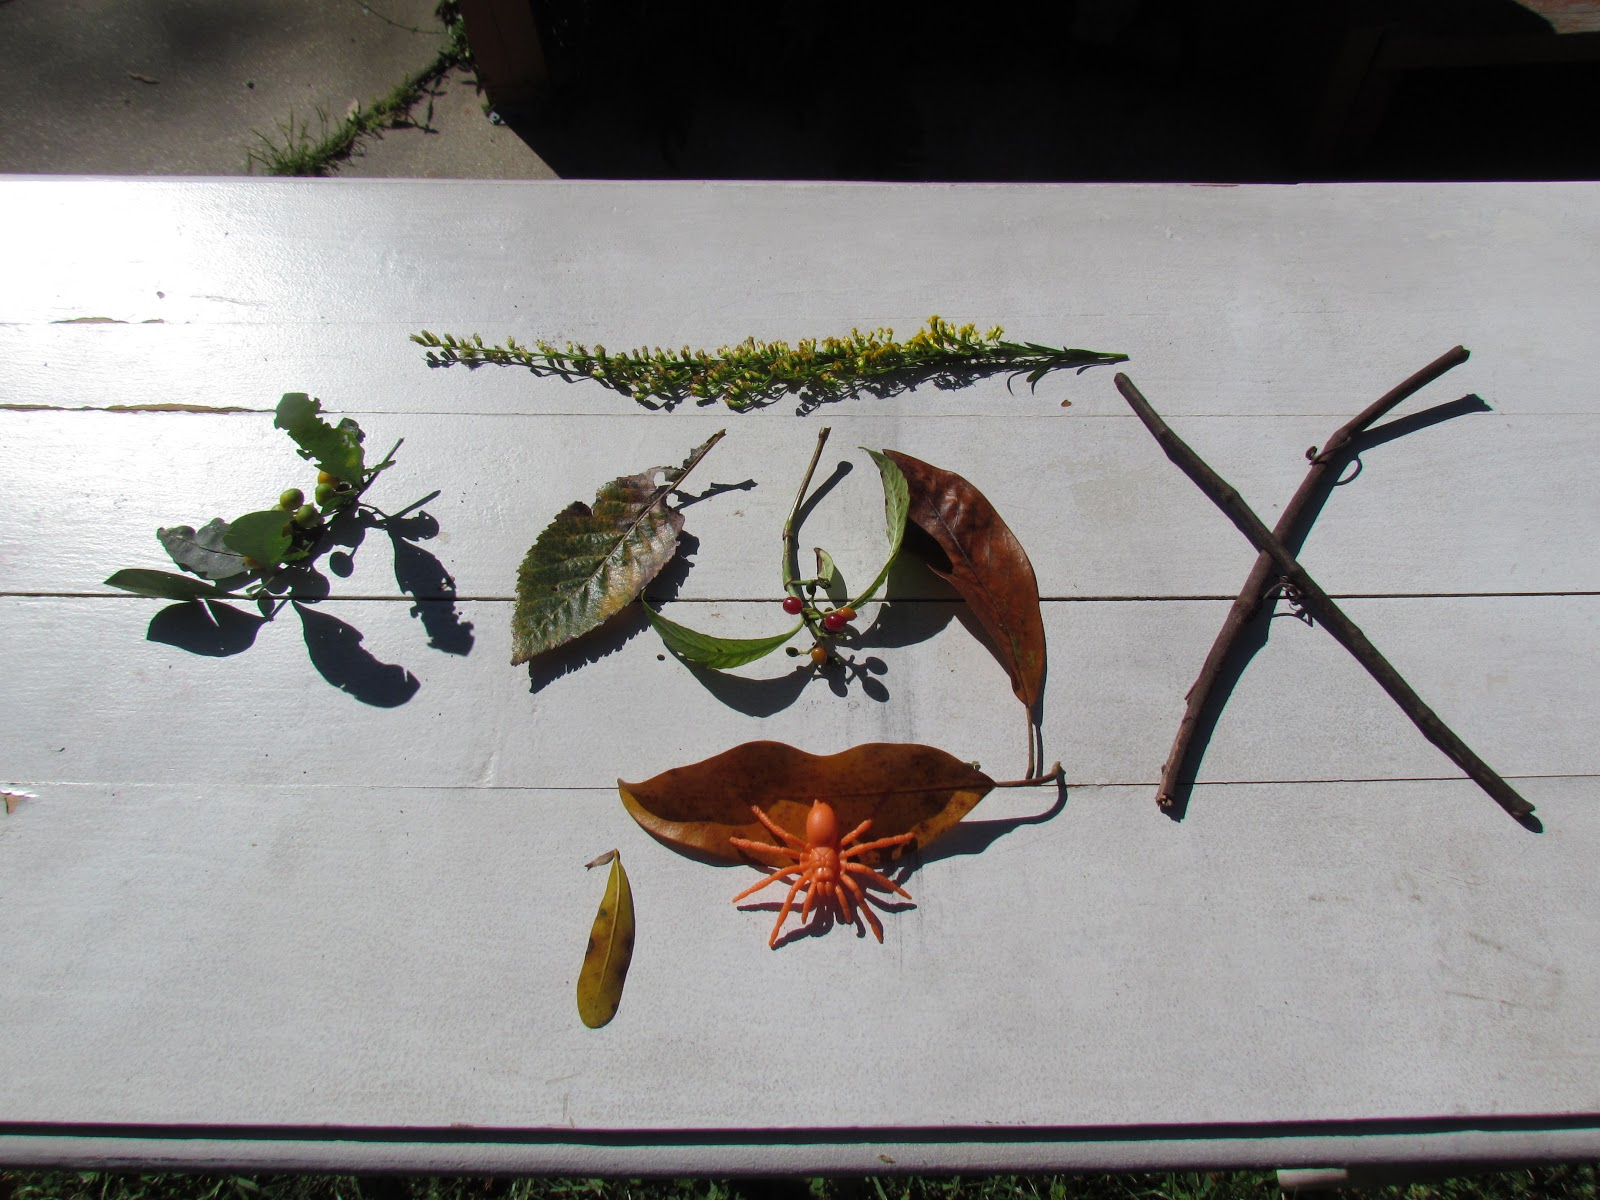 Halloween Flat Lay and Fall Decor With Orange Plastic Toy Spider and Orange Fall Leaves, Sticks, and Twigs